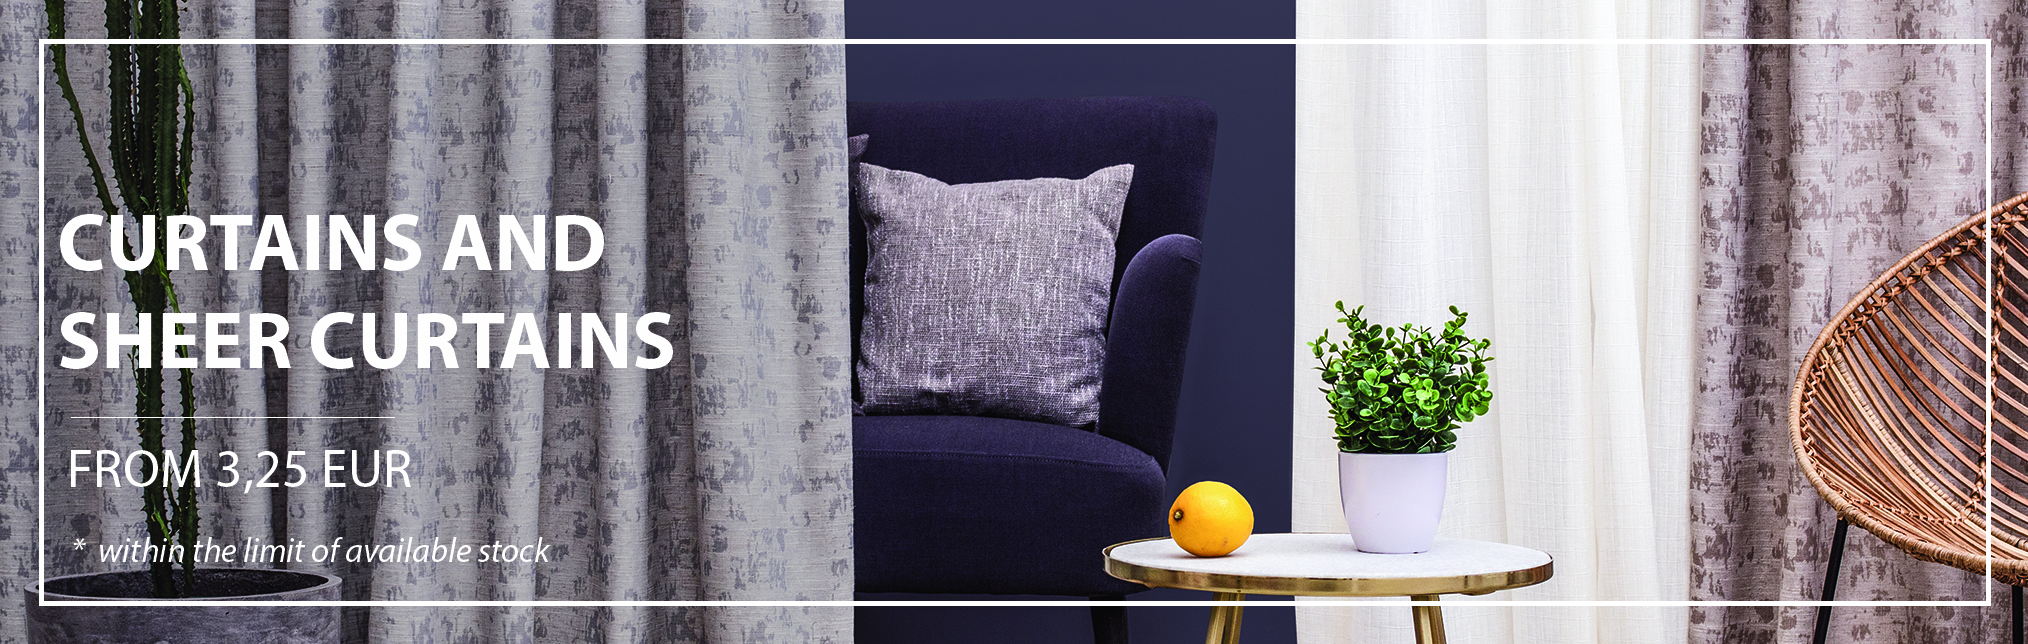 August Promotions: Standard Curtains and Sheer Curtains